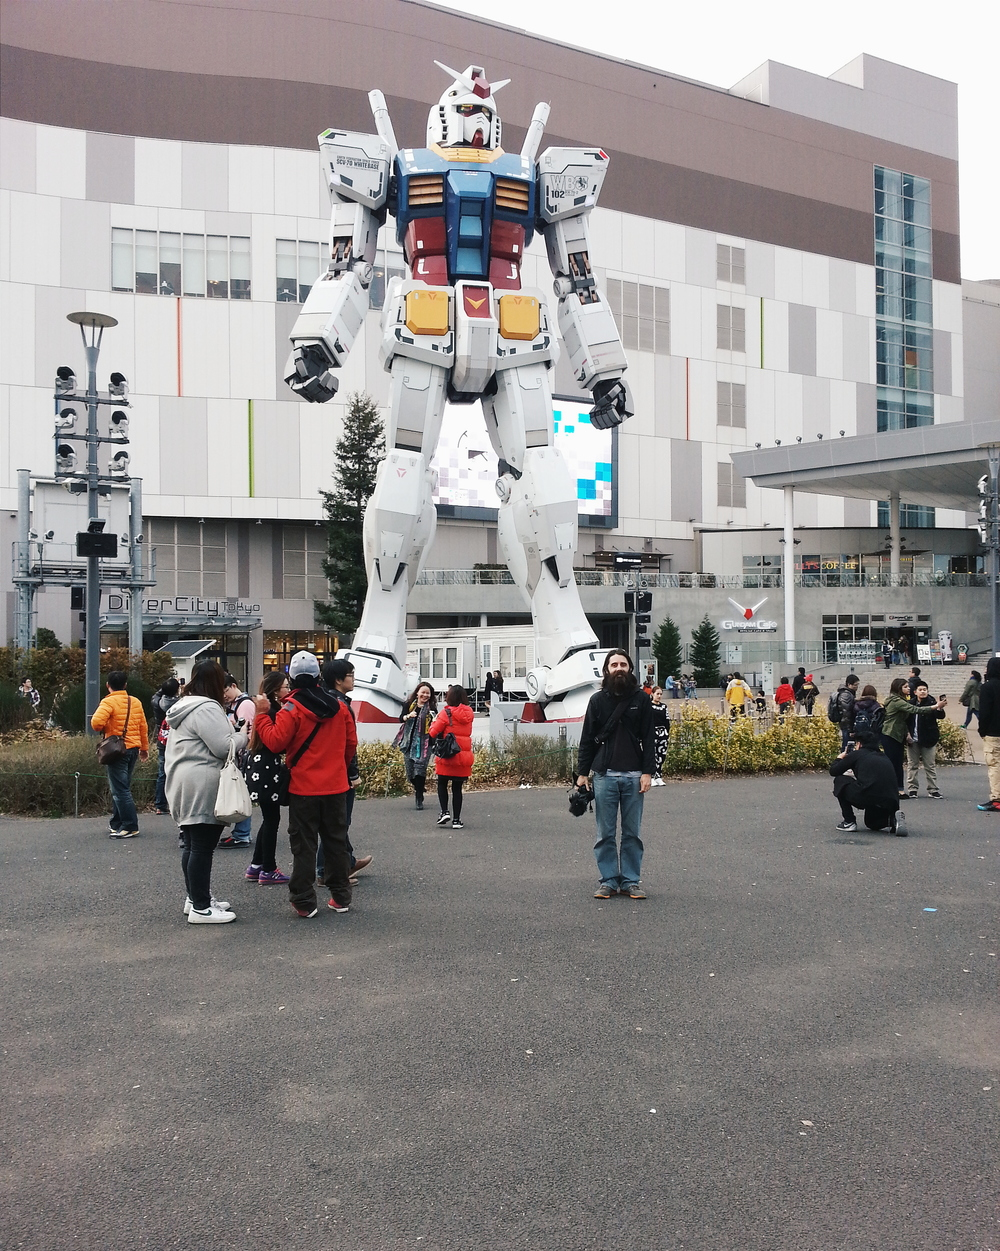 Walked around Odaiba and looked like an ant next to the Gundam. Cost: Depends. It's an island complex full of shopping